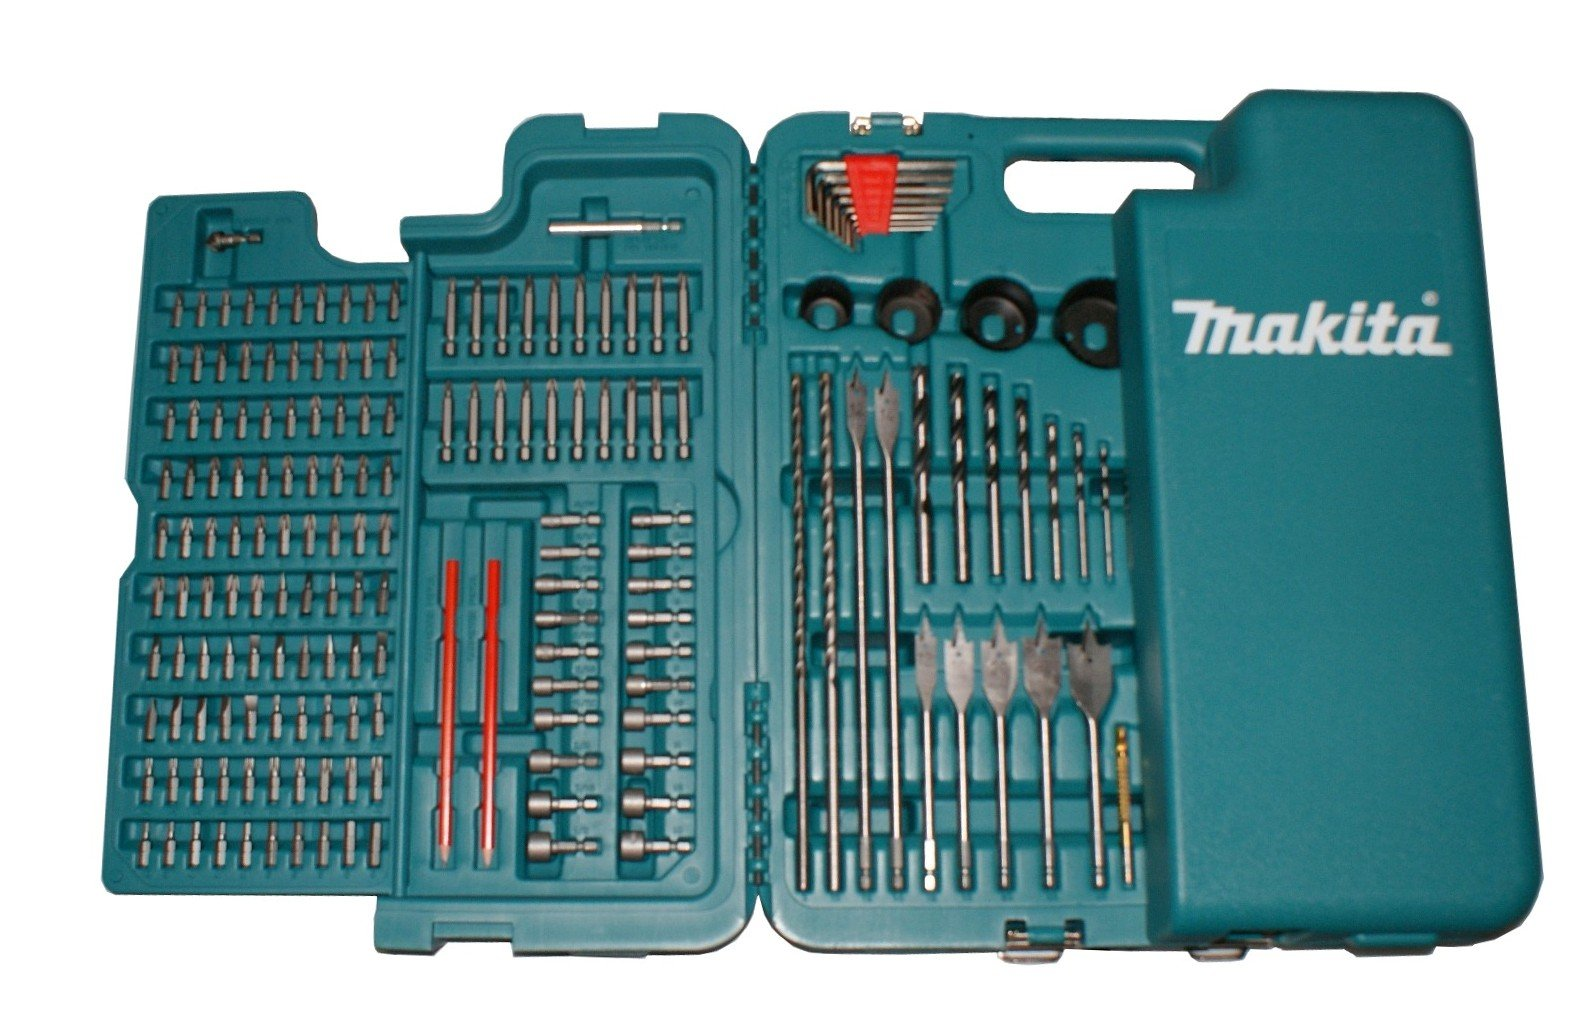 MAKITA 252 PIECE ACCESSORY KIT IN BLOW MOULDED CASE SCREWDRIVER, DRILLBITS GREAT FOR BUILDERS,TRADE,DIY by Makita (Image #5)